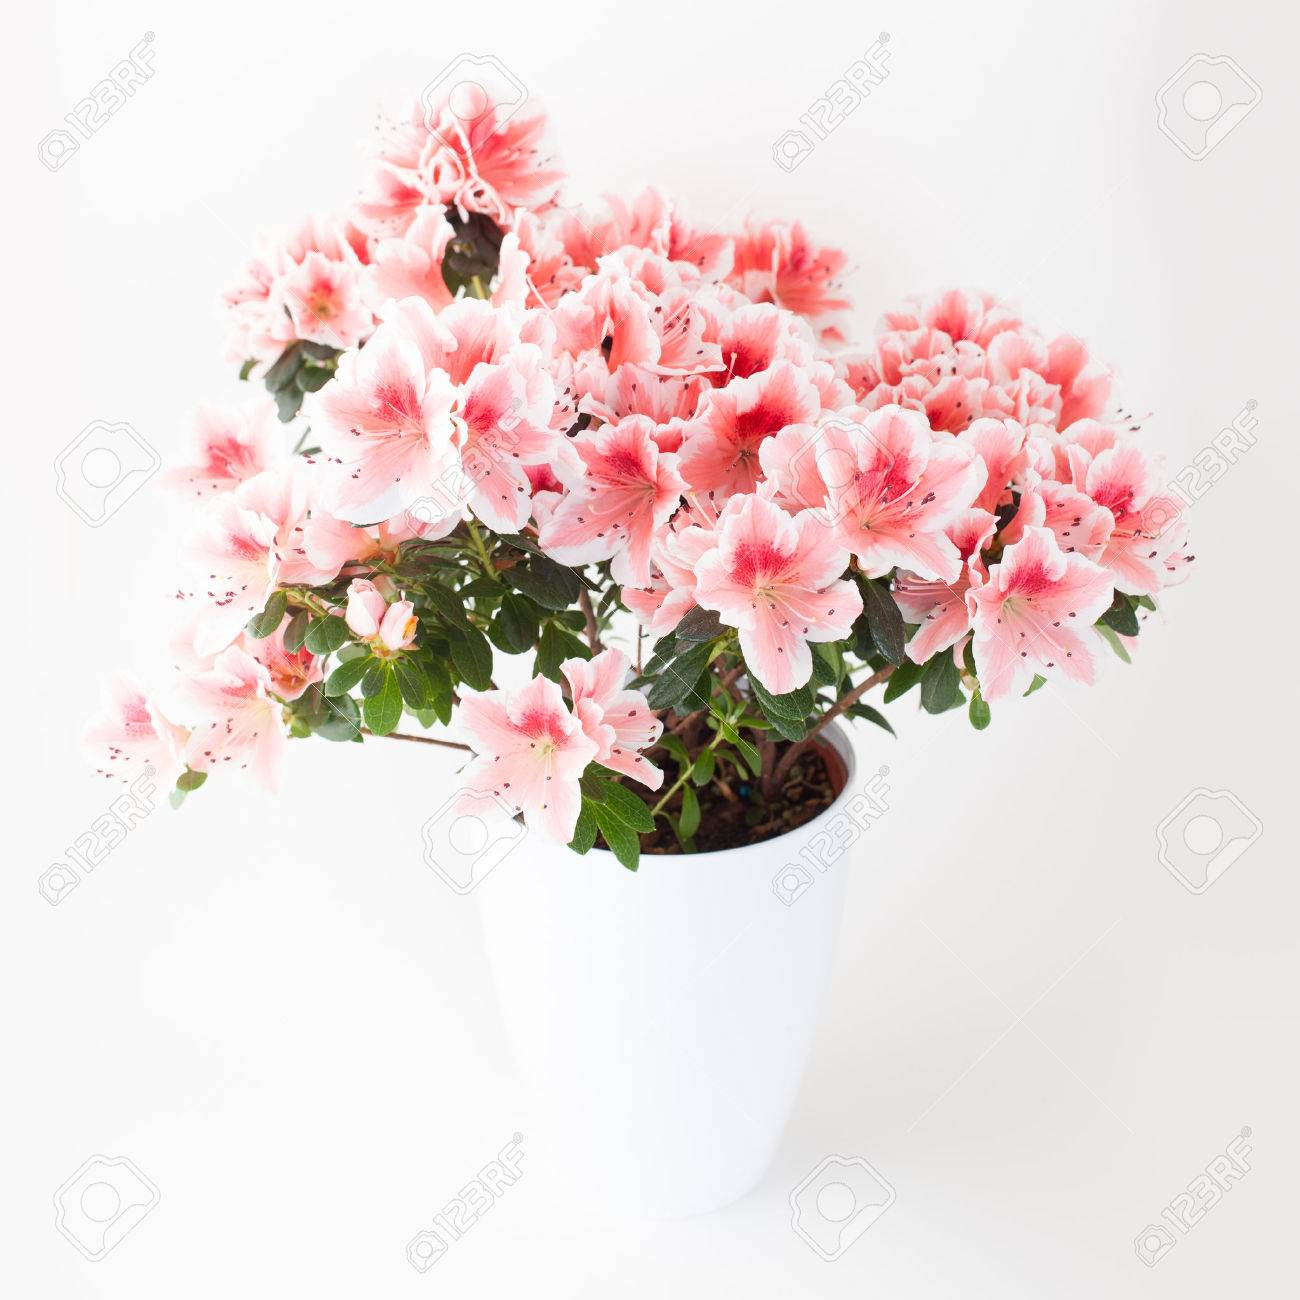 Pink and white azalea flower plant in white pot on light background pink and white azalea flower plant in white pot on light background stock photo 57760383 mightylinksfo